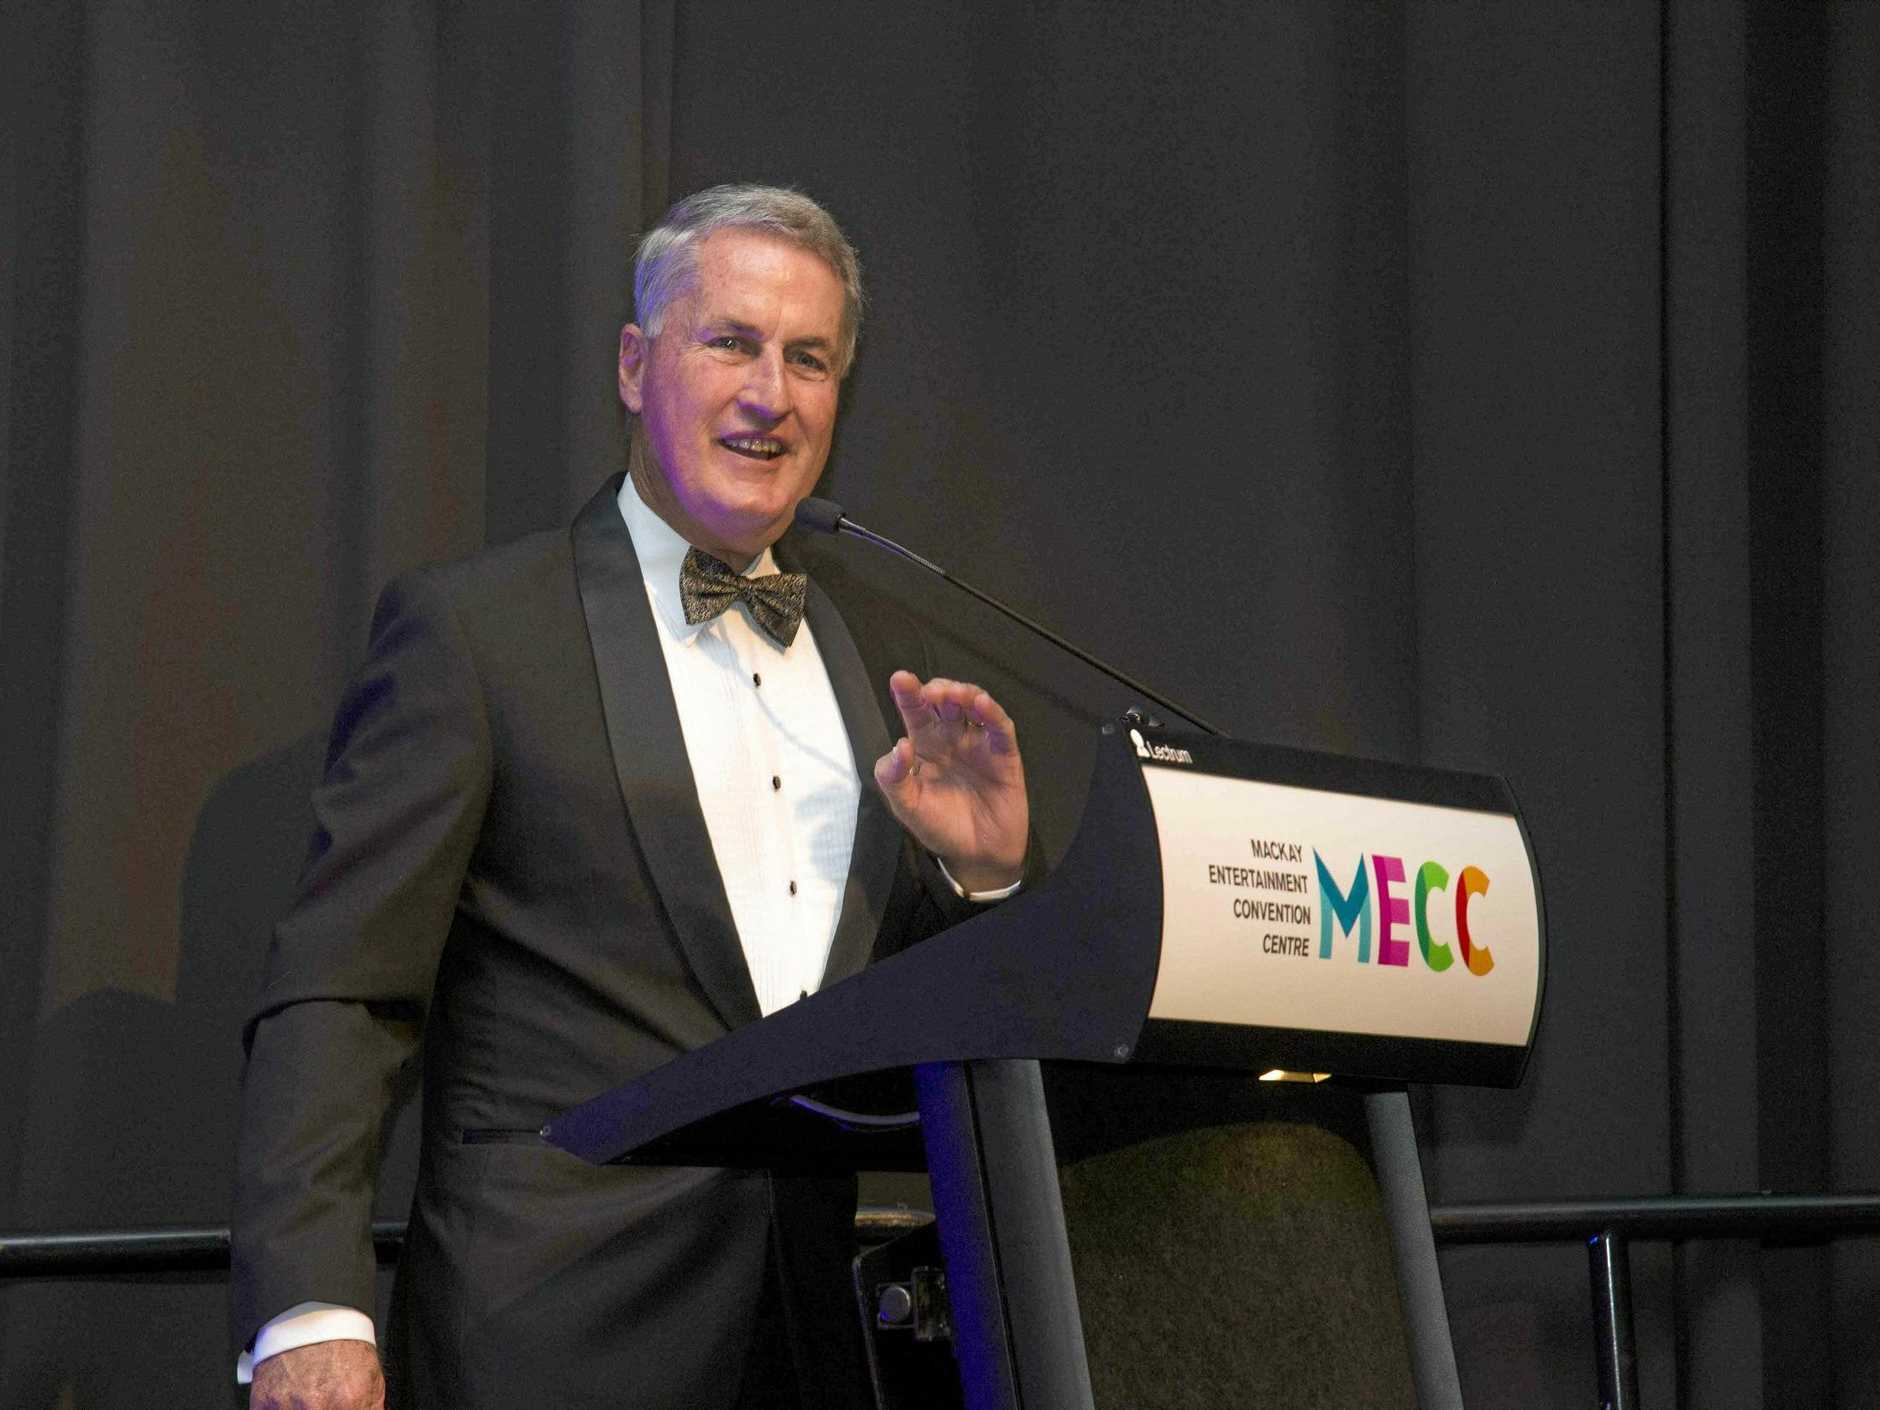 Mayor Greg Williamson at last year's Charity Ball at the MECC.